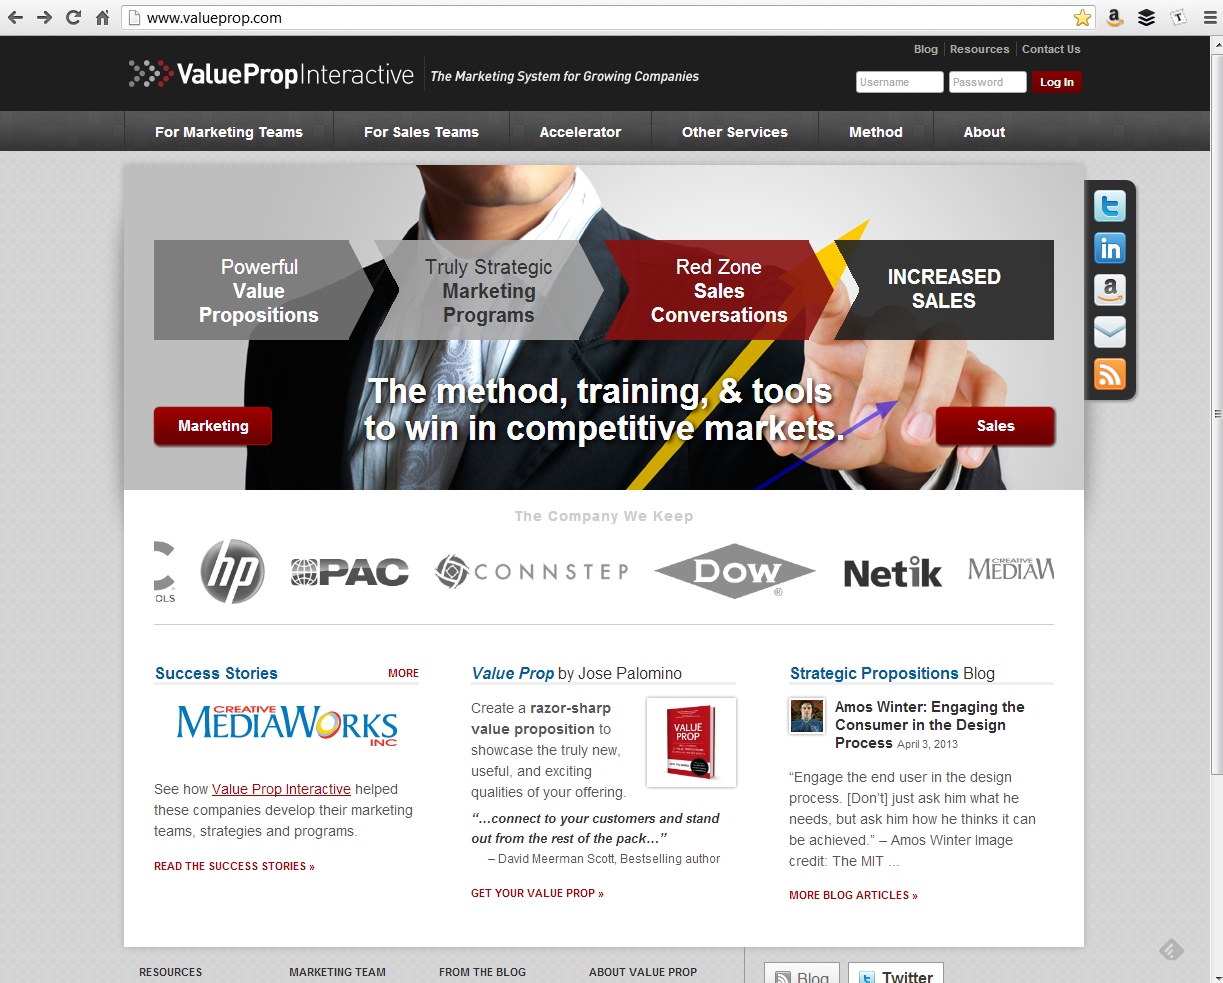 """<h4>ValueProp.com</h4>  I handle the day-to-day maintenance for Value Prop Interactive's websites, including this latest iteration of the homepage. Typically, the boss comes up with an idea and sketches it out in PowerPoint, and I make it happen in WordPress. This recent update included a complete overhaul of the main """"slider"""" (which doesn't actually slide now, but is just sort of an animated presentation of each peice) and the introduction of the client logo reel below it.<br /><br />(Credit for the overall site design goes to the lovely folks at <a href=""""http://www.strangerstudios.com"""" target=""""_blank"""">Stranger Studios</a> – I just keep the content current and conforming to the design.)  <a href=""""http://www.valueprop.com"""" target=""""_blank"""" class=""""link"""">Check it out! →</a>"""